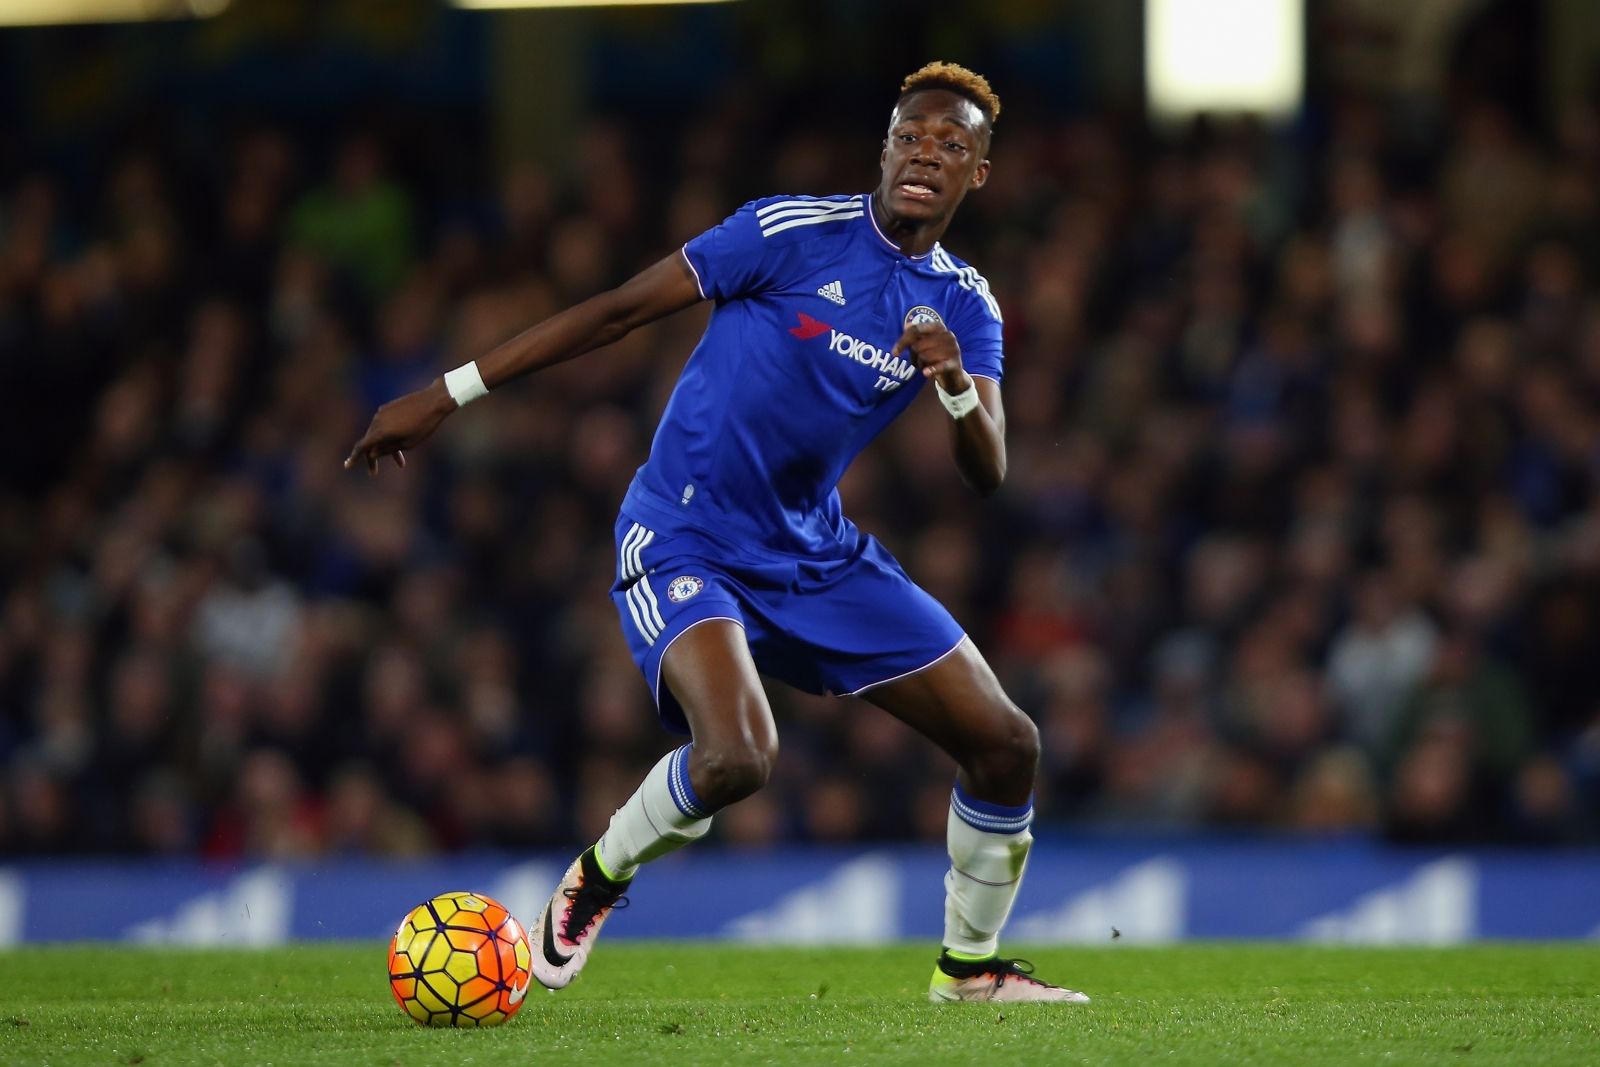 Chelsea starlet on the verge of joining Newcastle on season-long loan